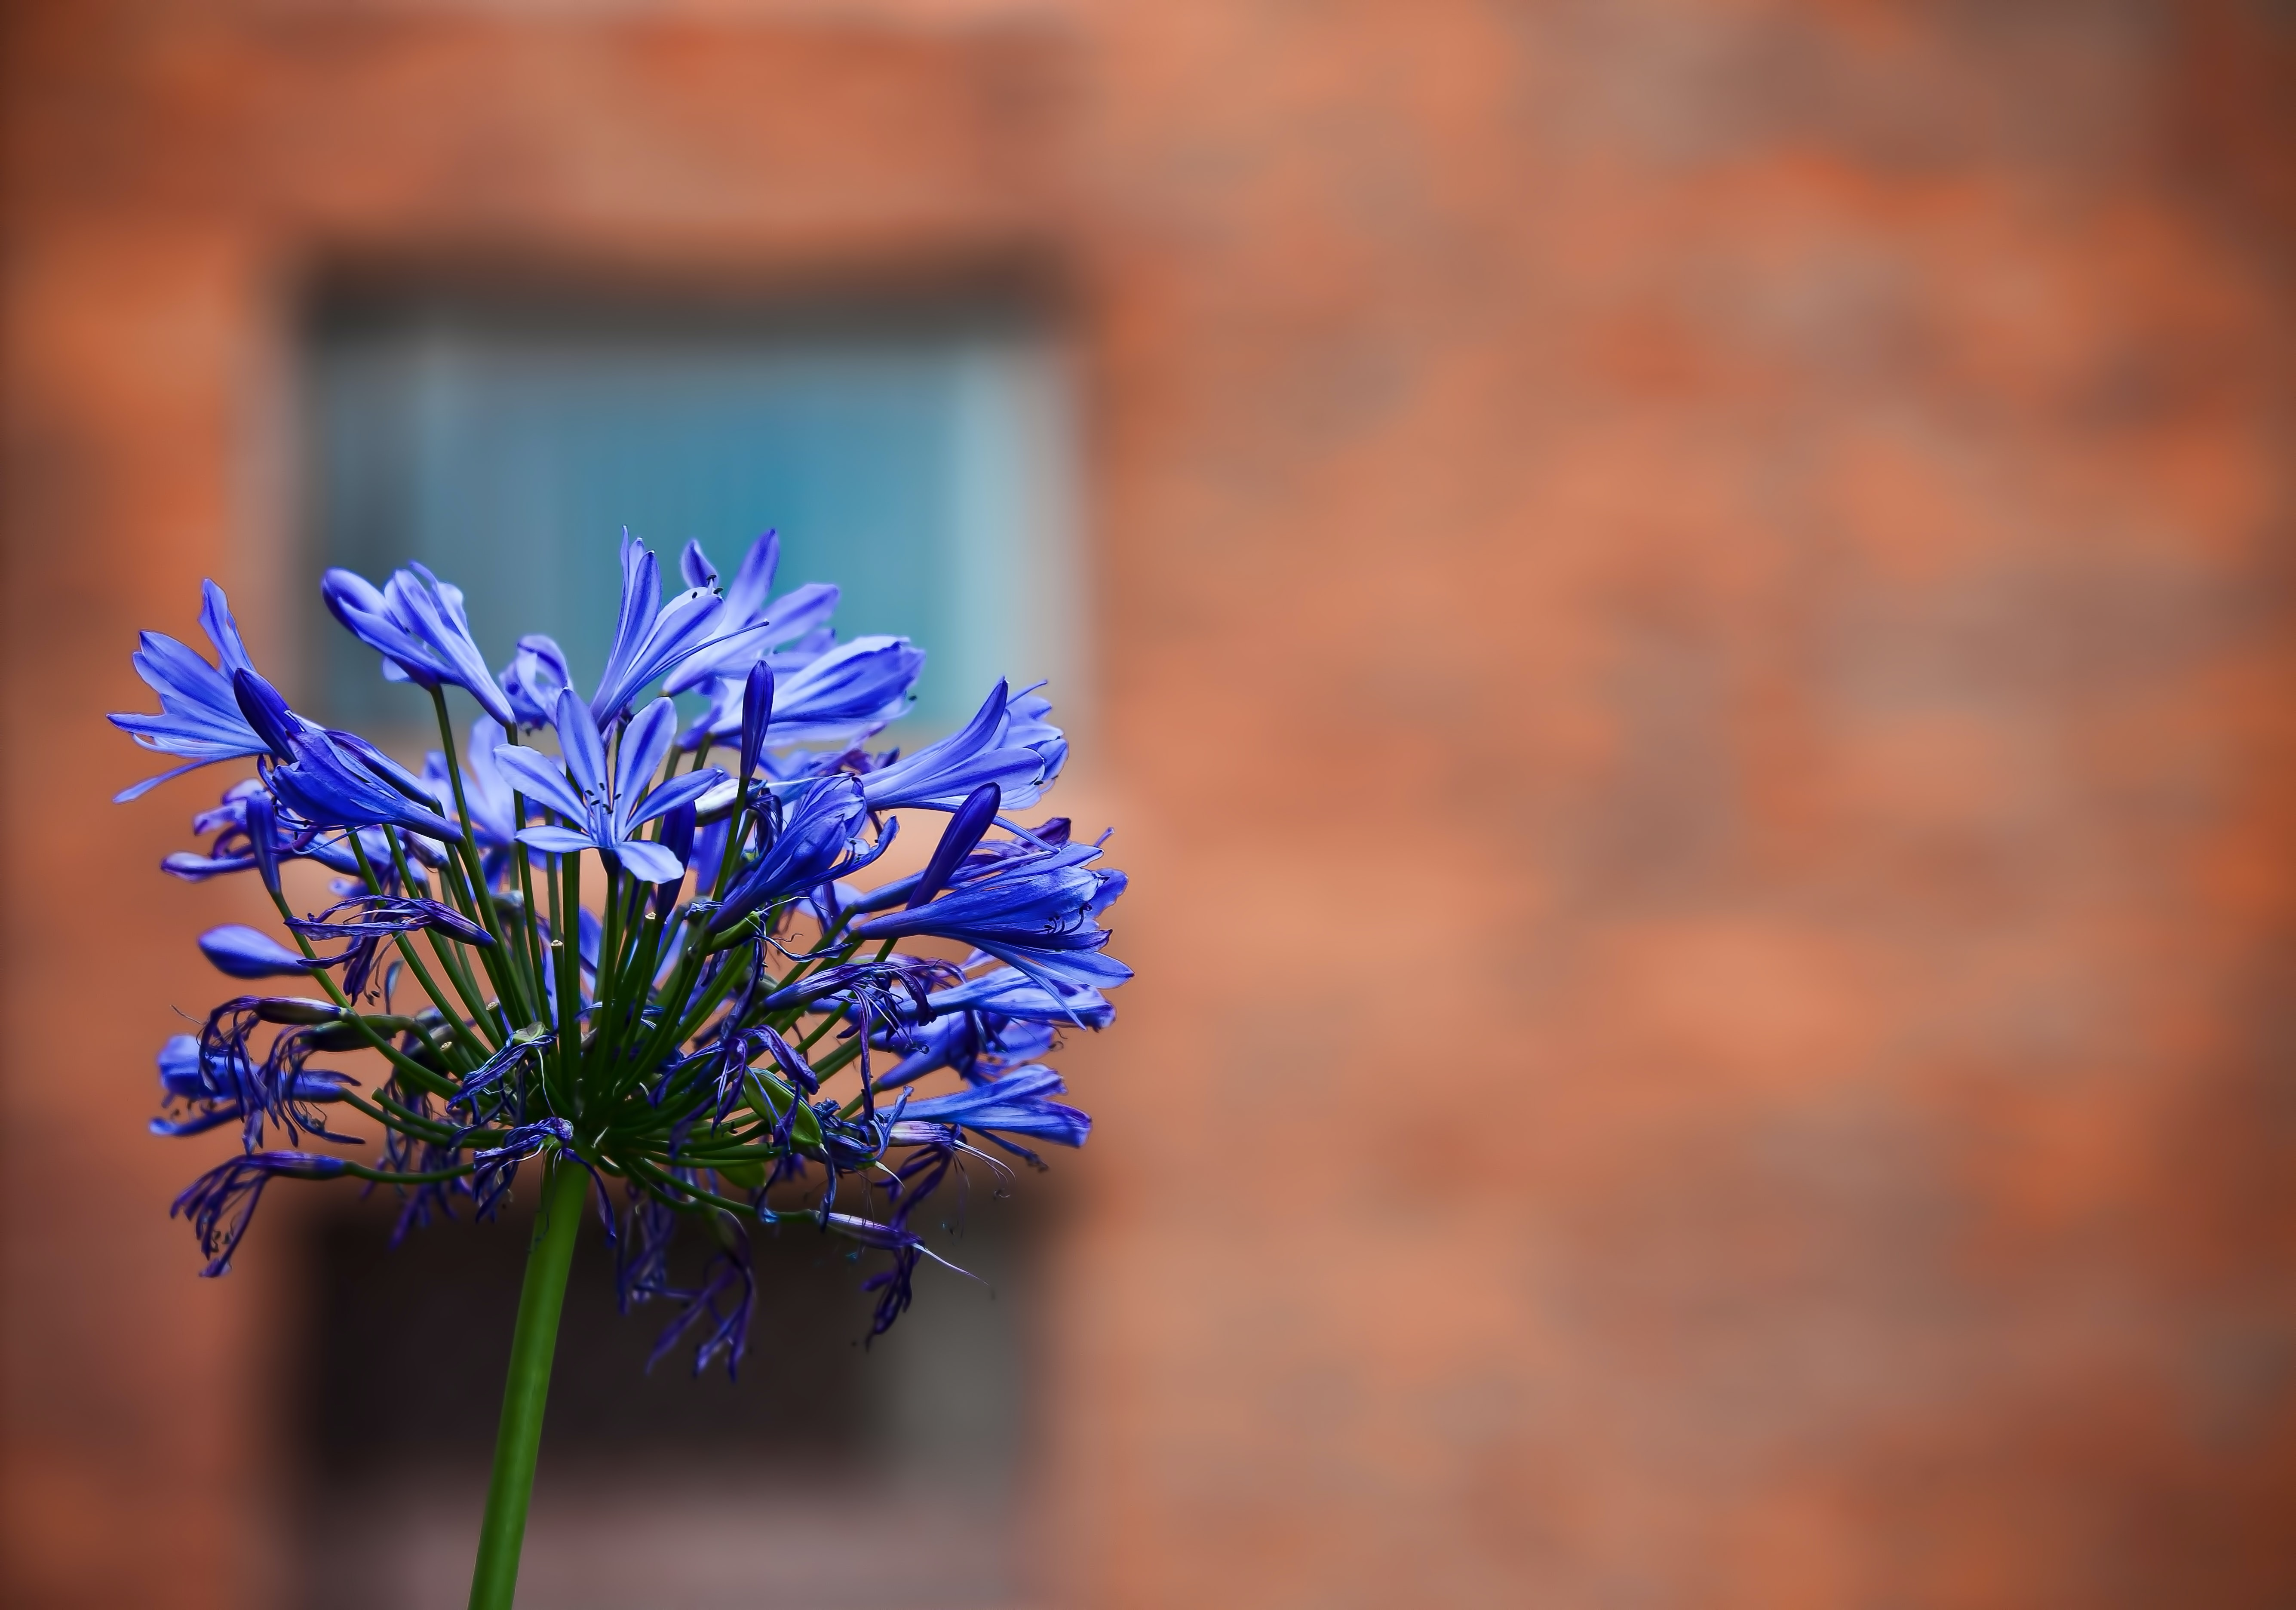 blue flower plant blooming during daytime